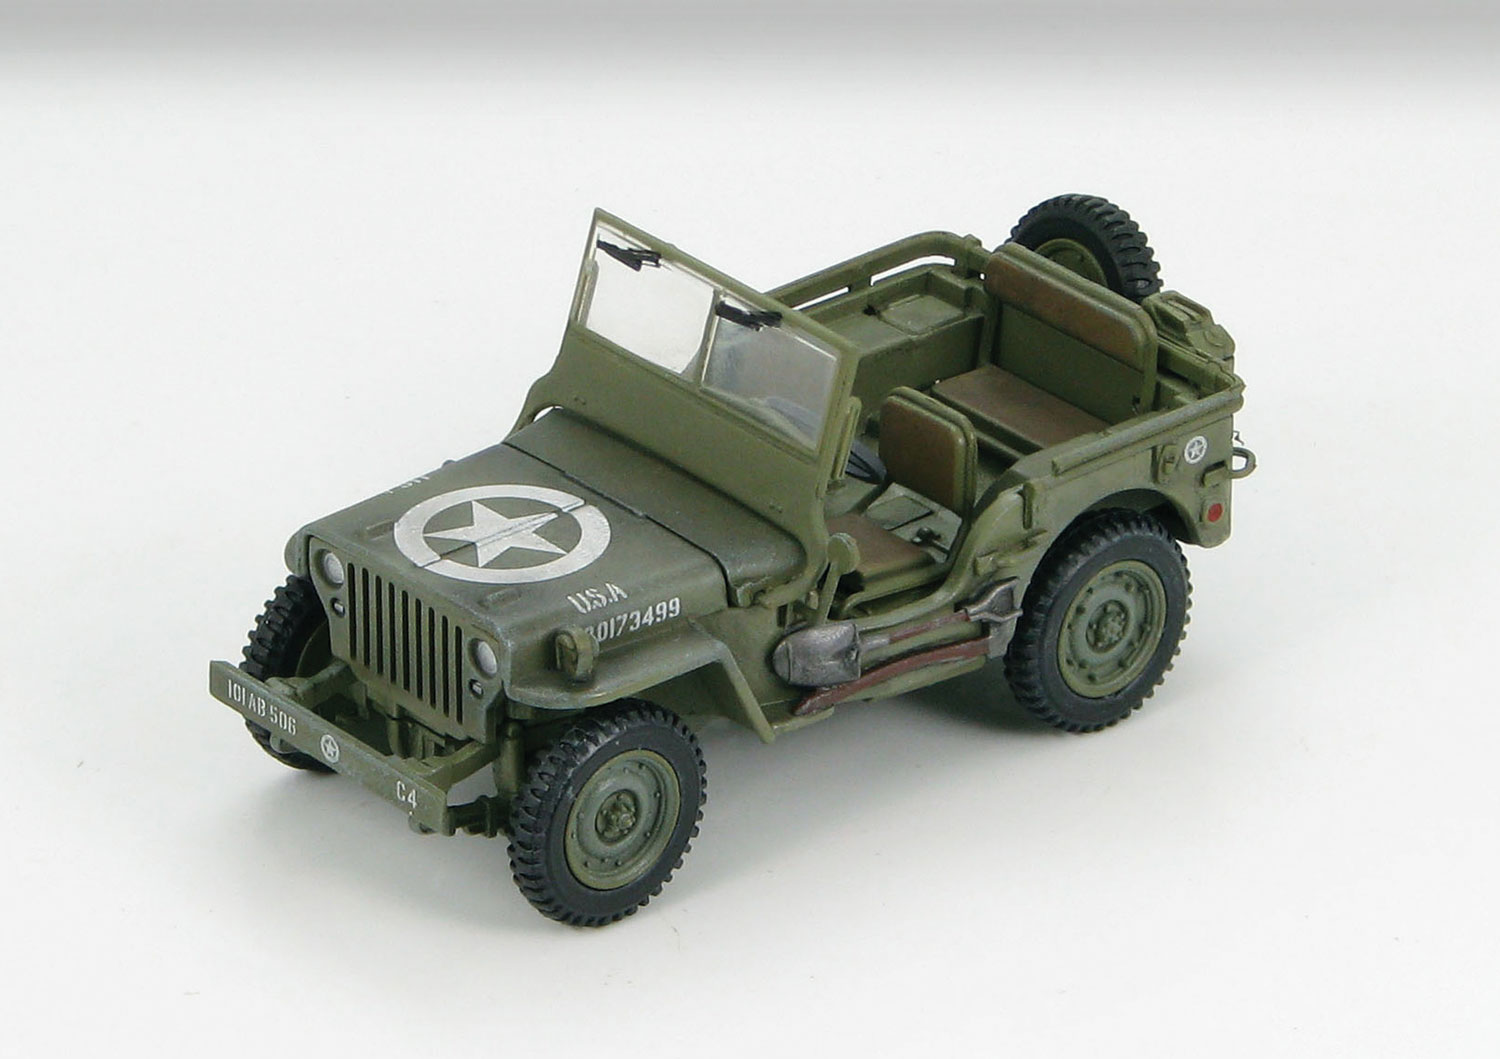 HG1601 Willys MB Jeep 101st Airborne Div 1944 148 Scale